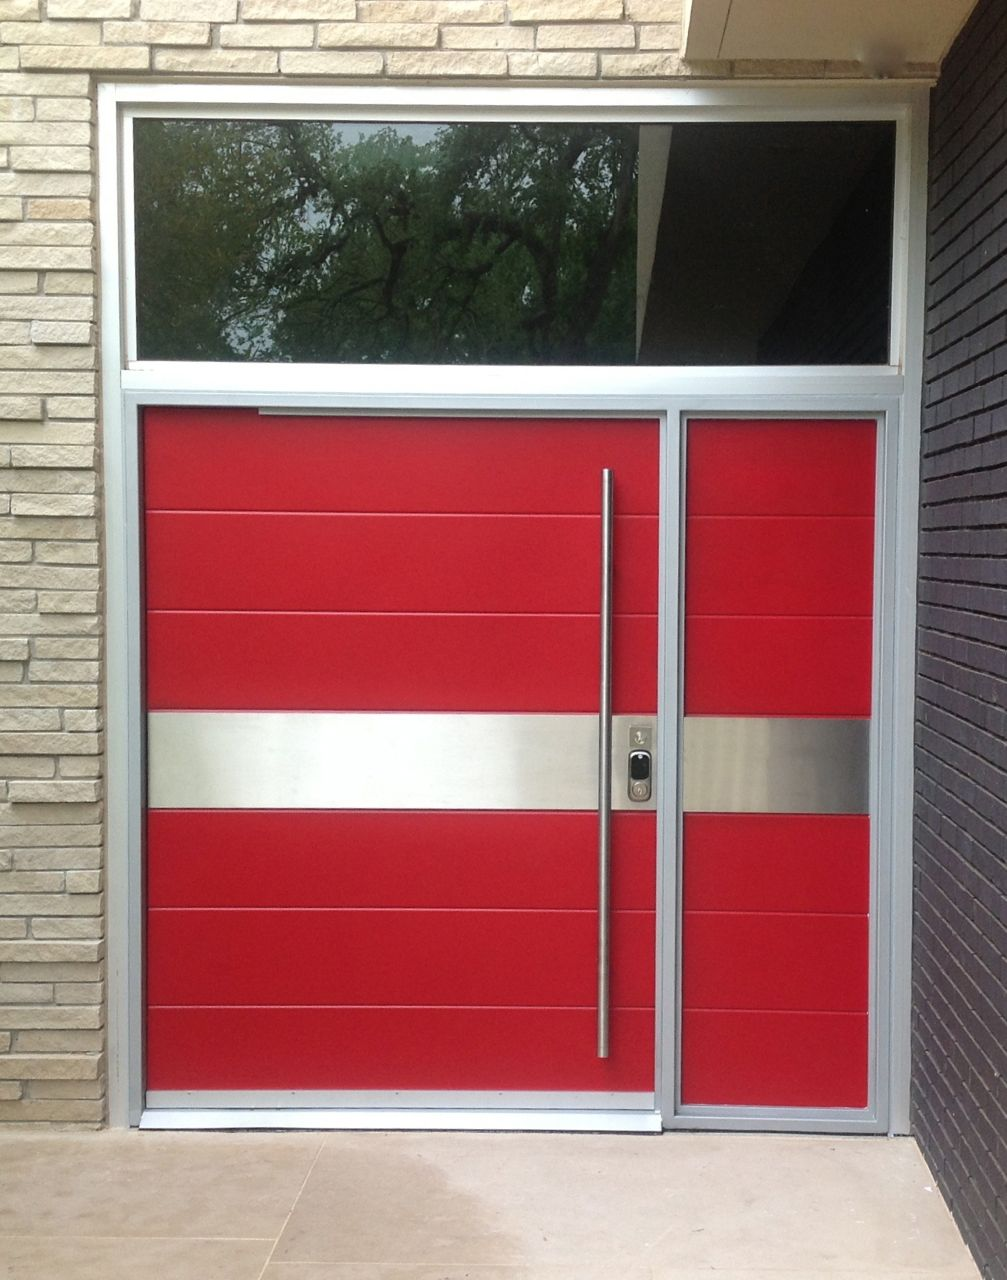 Stainless Steel Entry Doors : Red and stainless steel pivot door portella